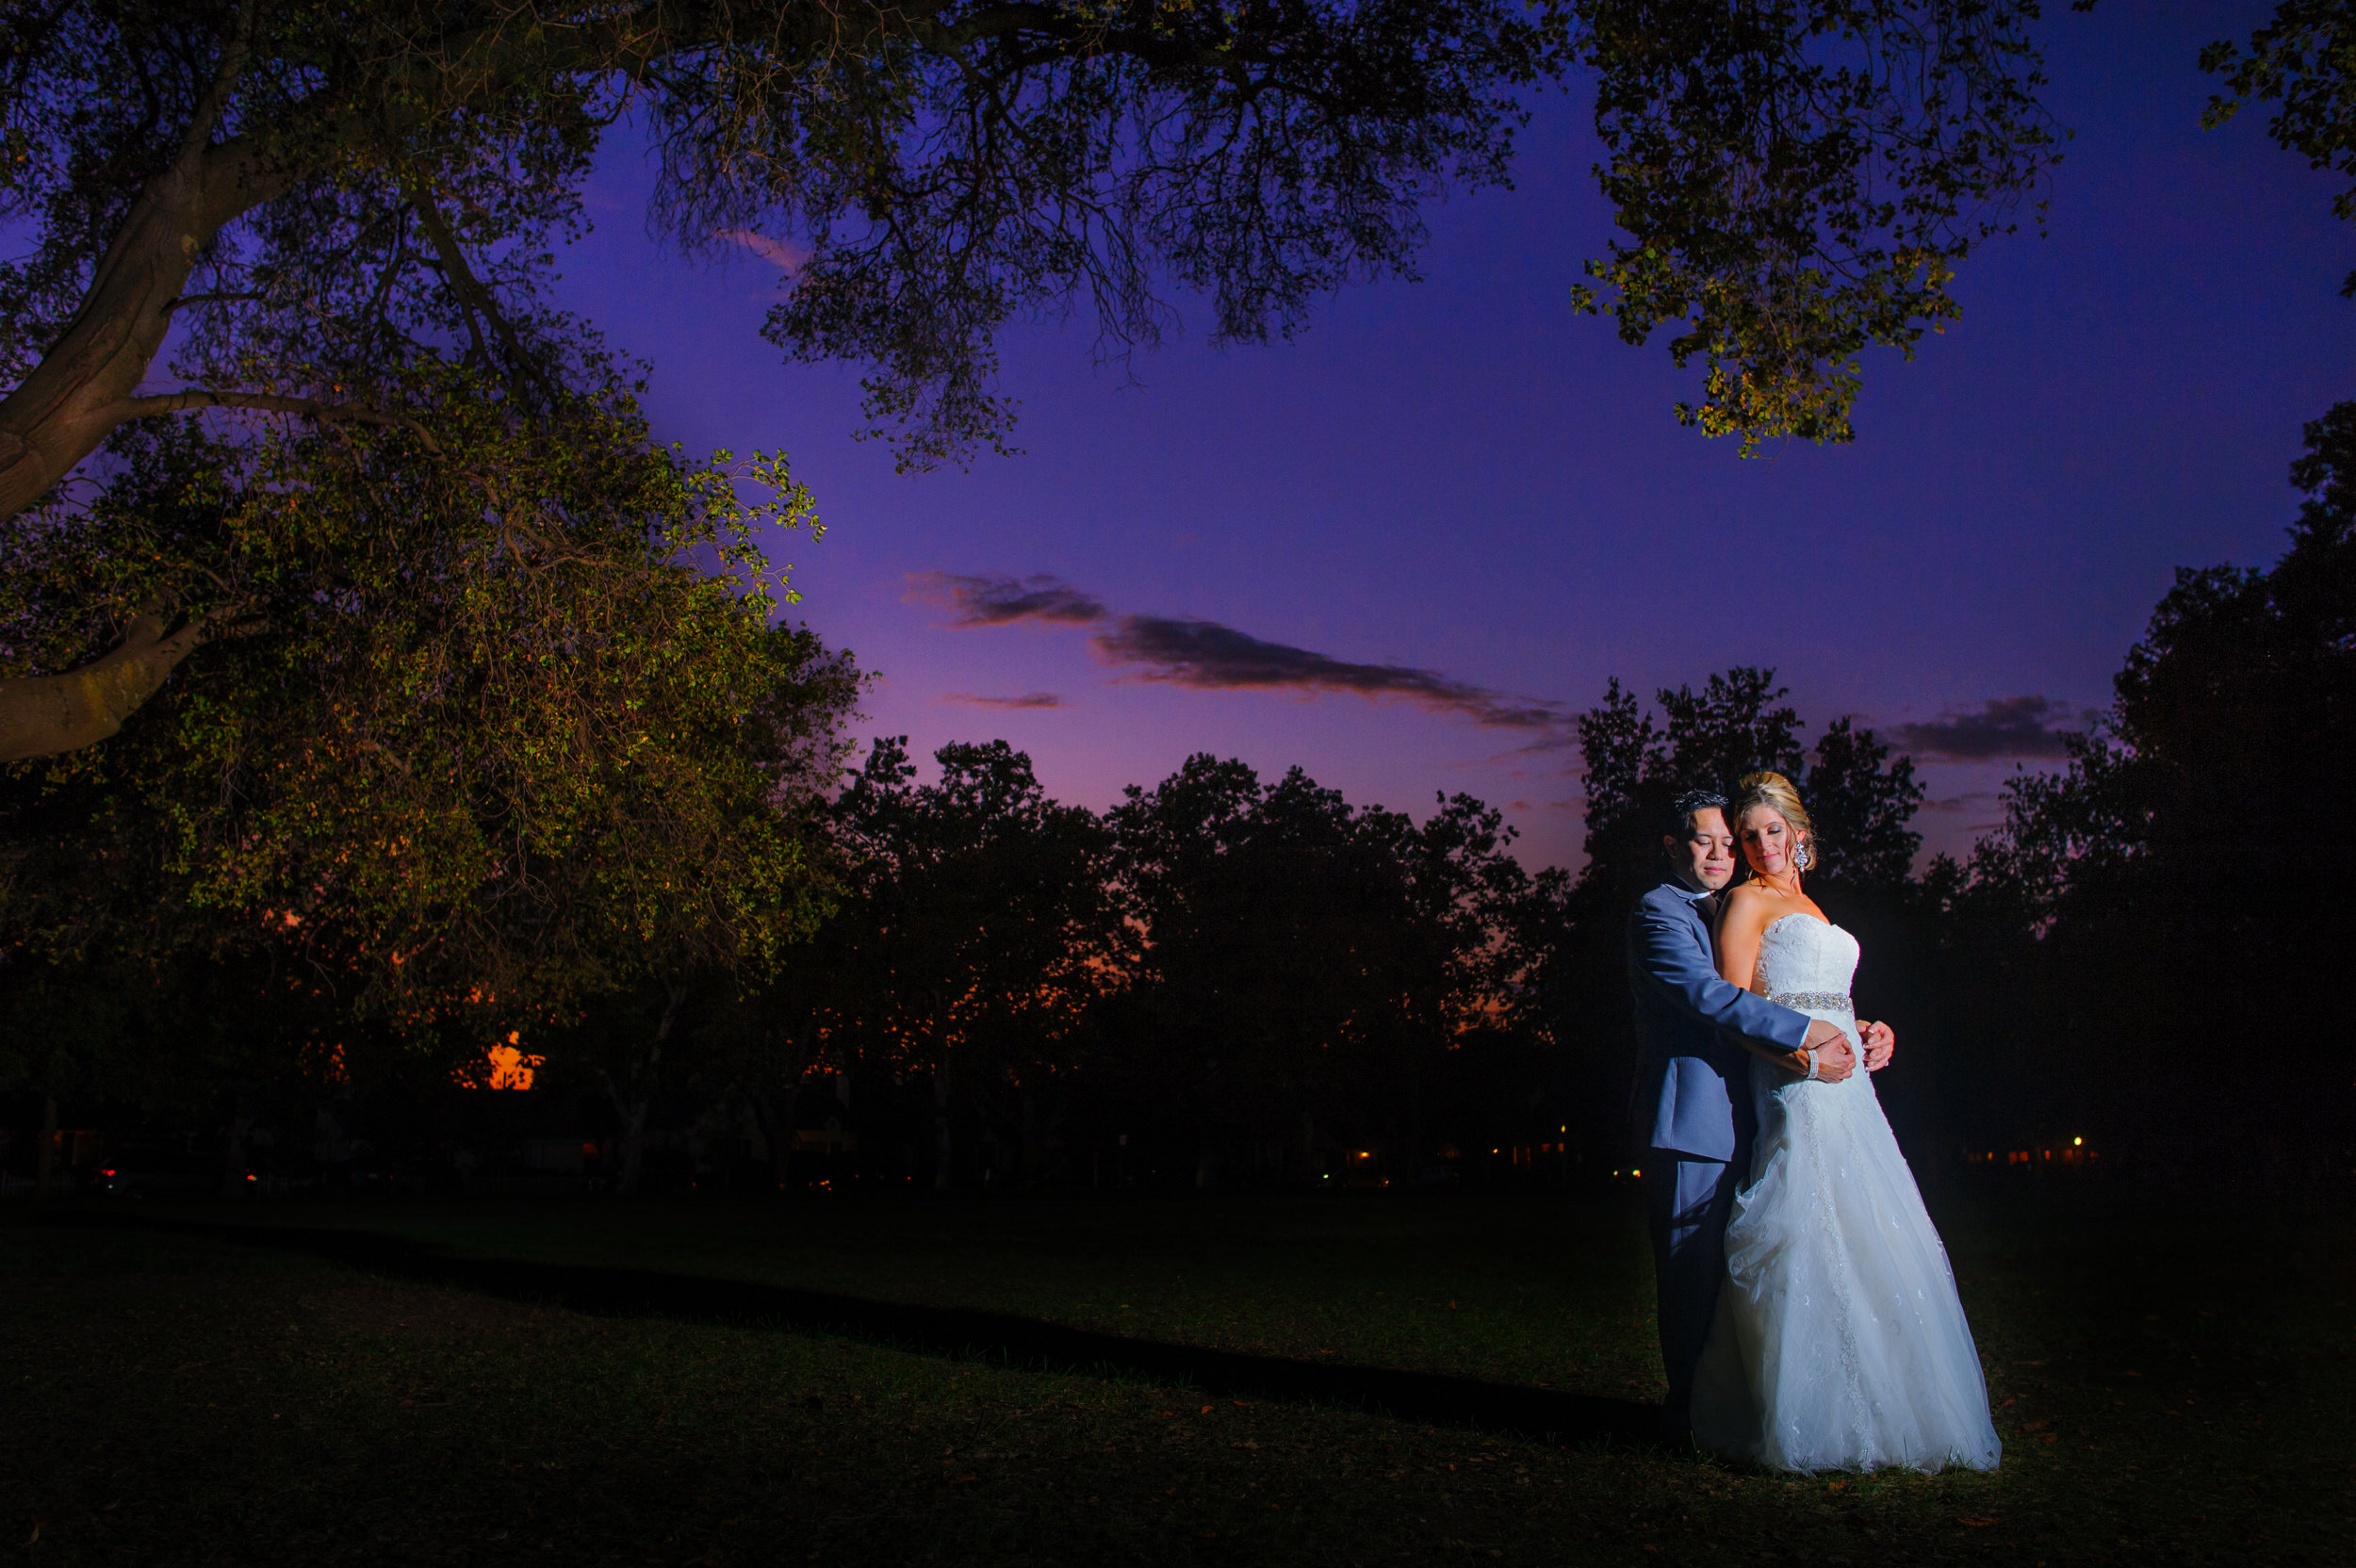 susan-brad-026-sacramento-wedding-photographer-katherine-nicole-photography.JPG